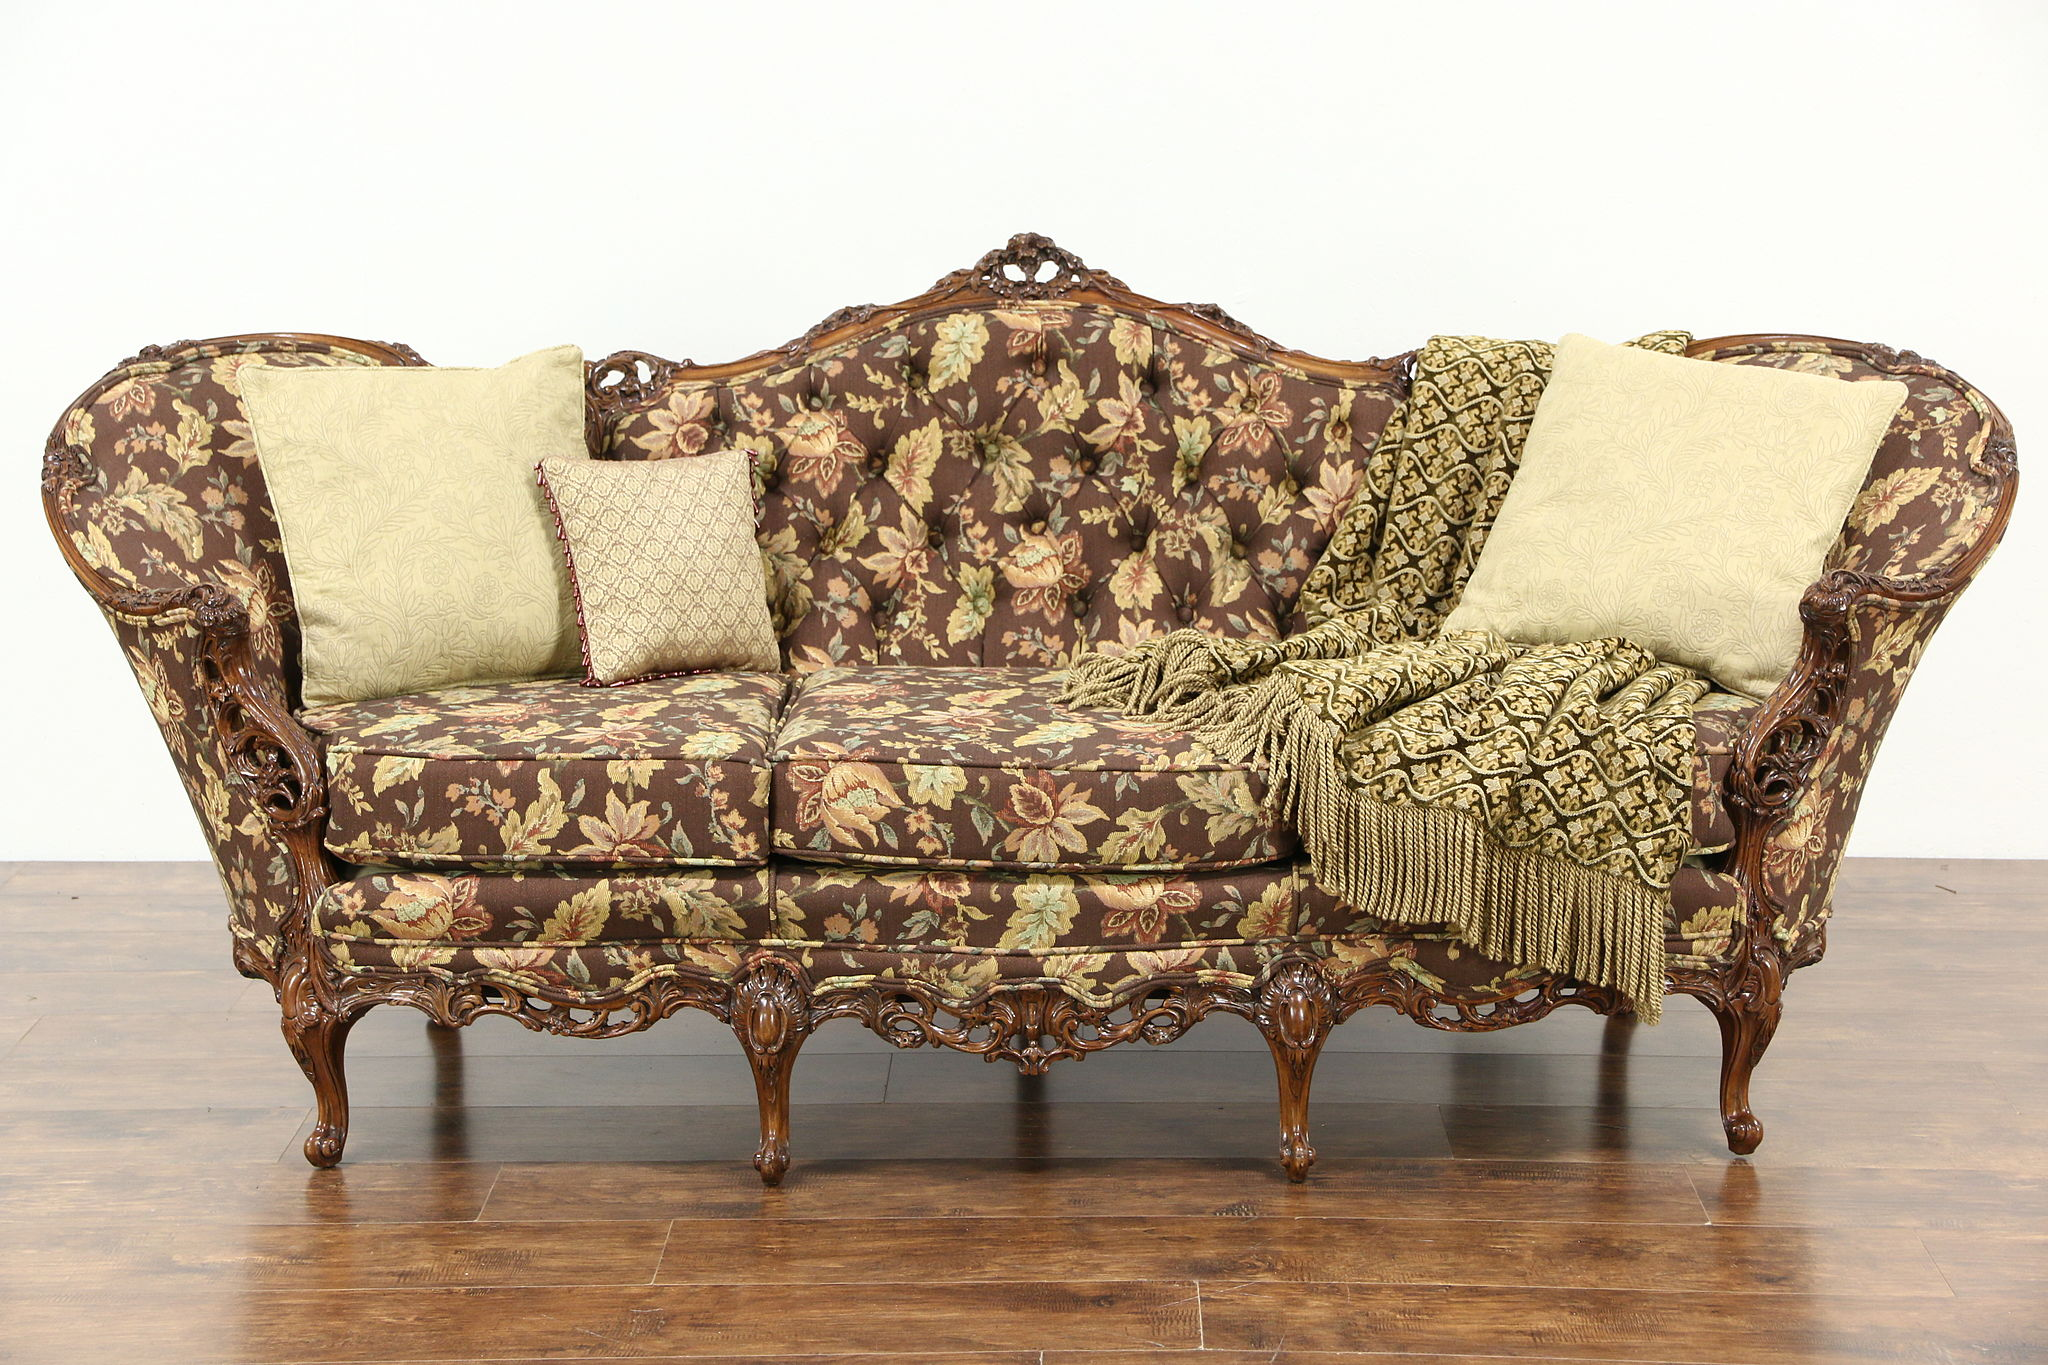 antique french sofa ebay 2 cushion recliner sold - carved 1940's vintage sofa, pierced swag & rose ...